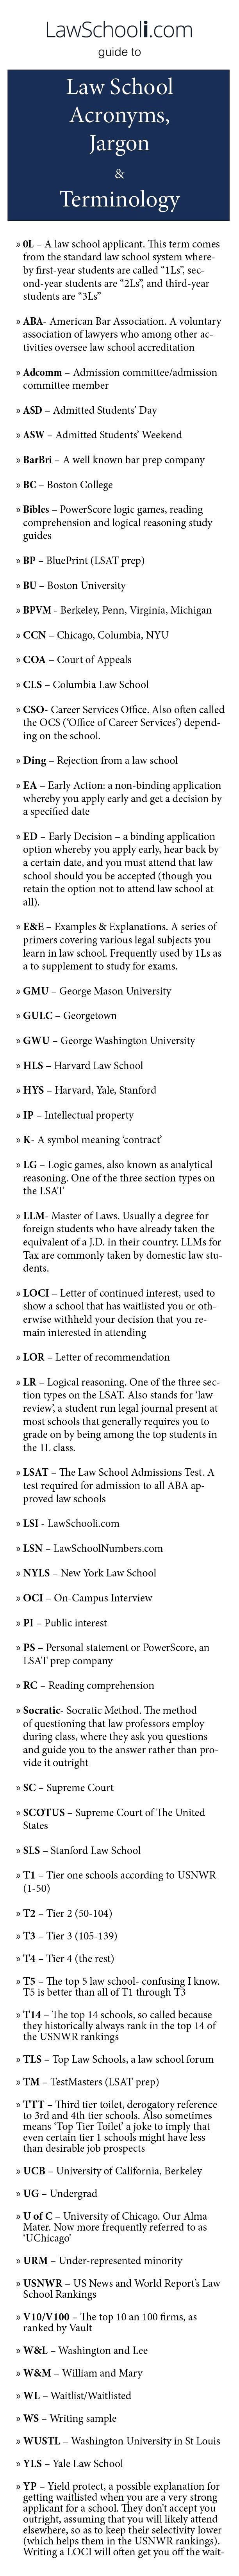 21 best lsat images on pinterest law school lsat prep and lsat law school acronyms jargon and terminology malvernweather